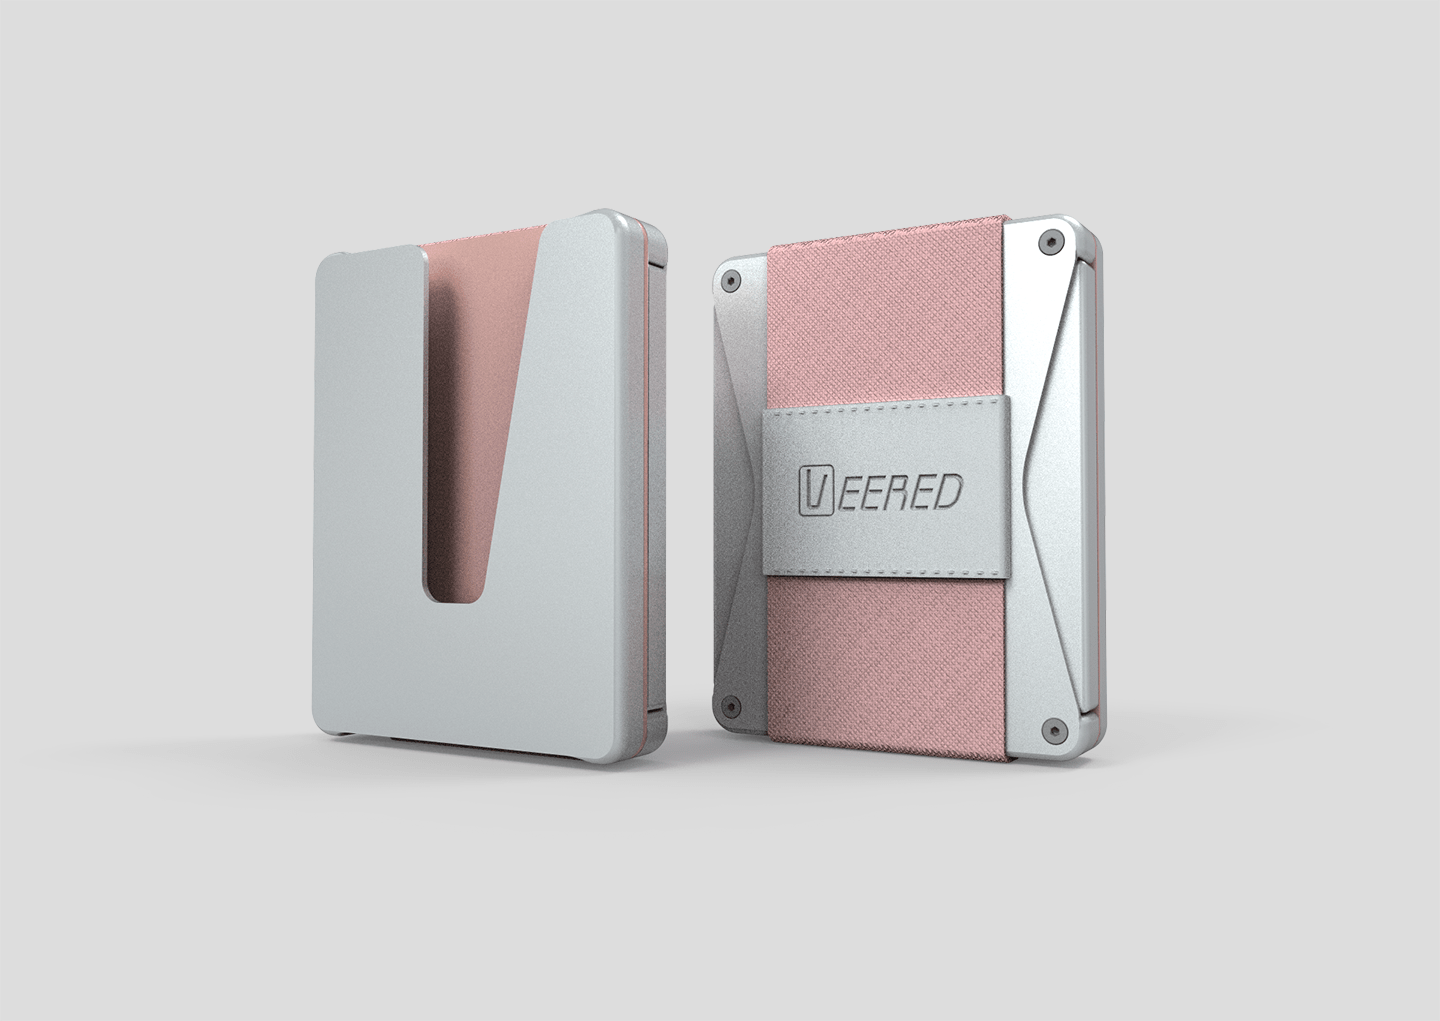 Veered Wallet Wallet Sleek Life Design LLC Grey + Rose Gold